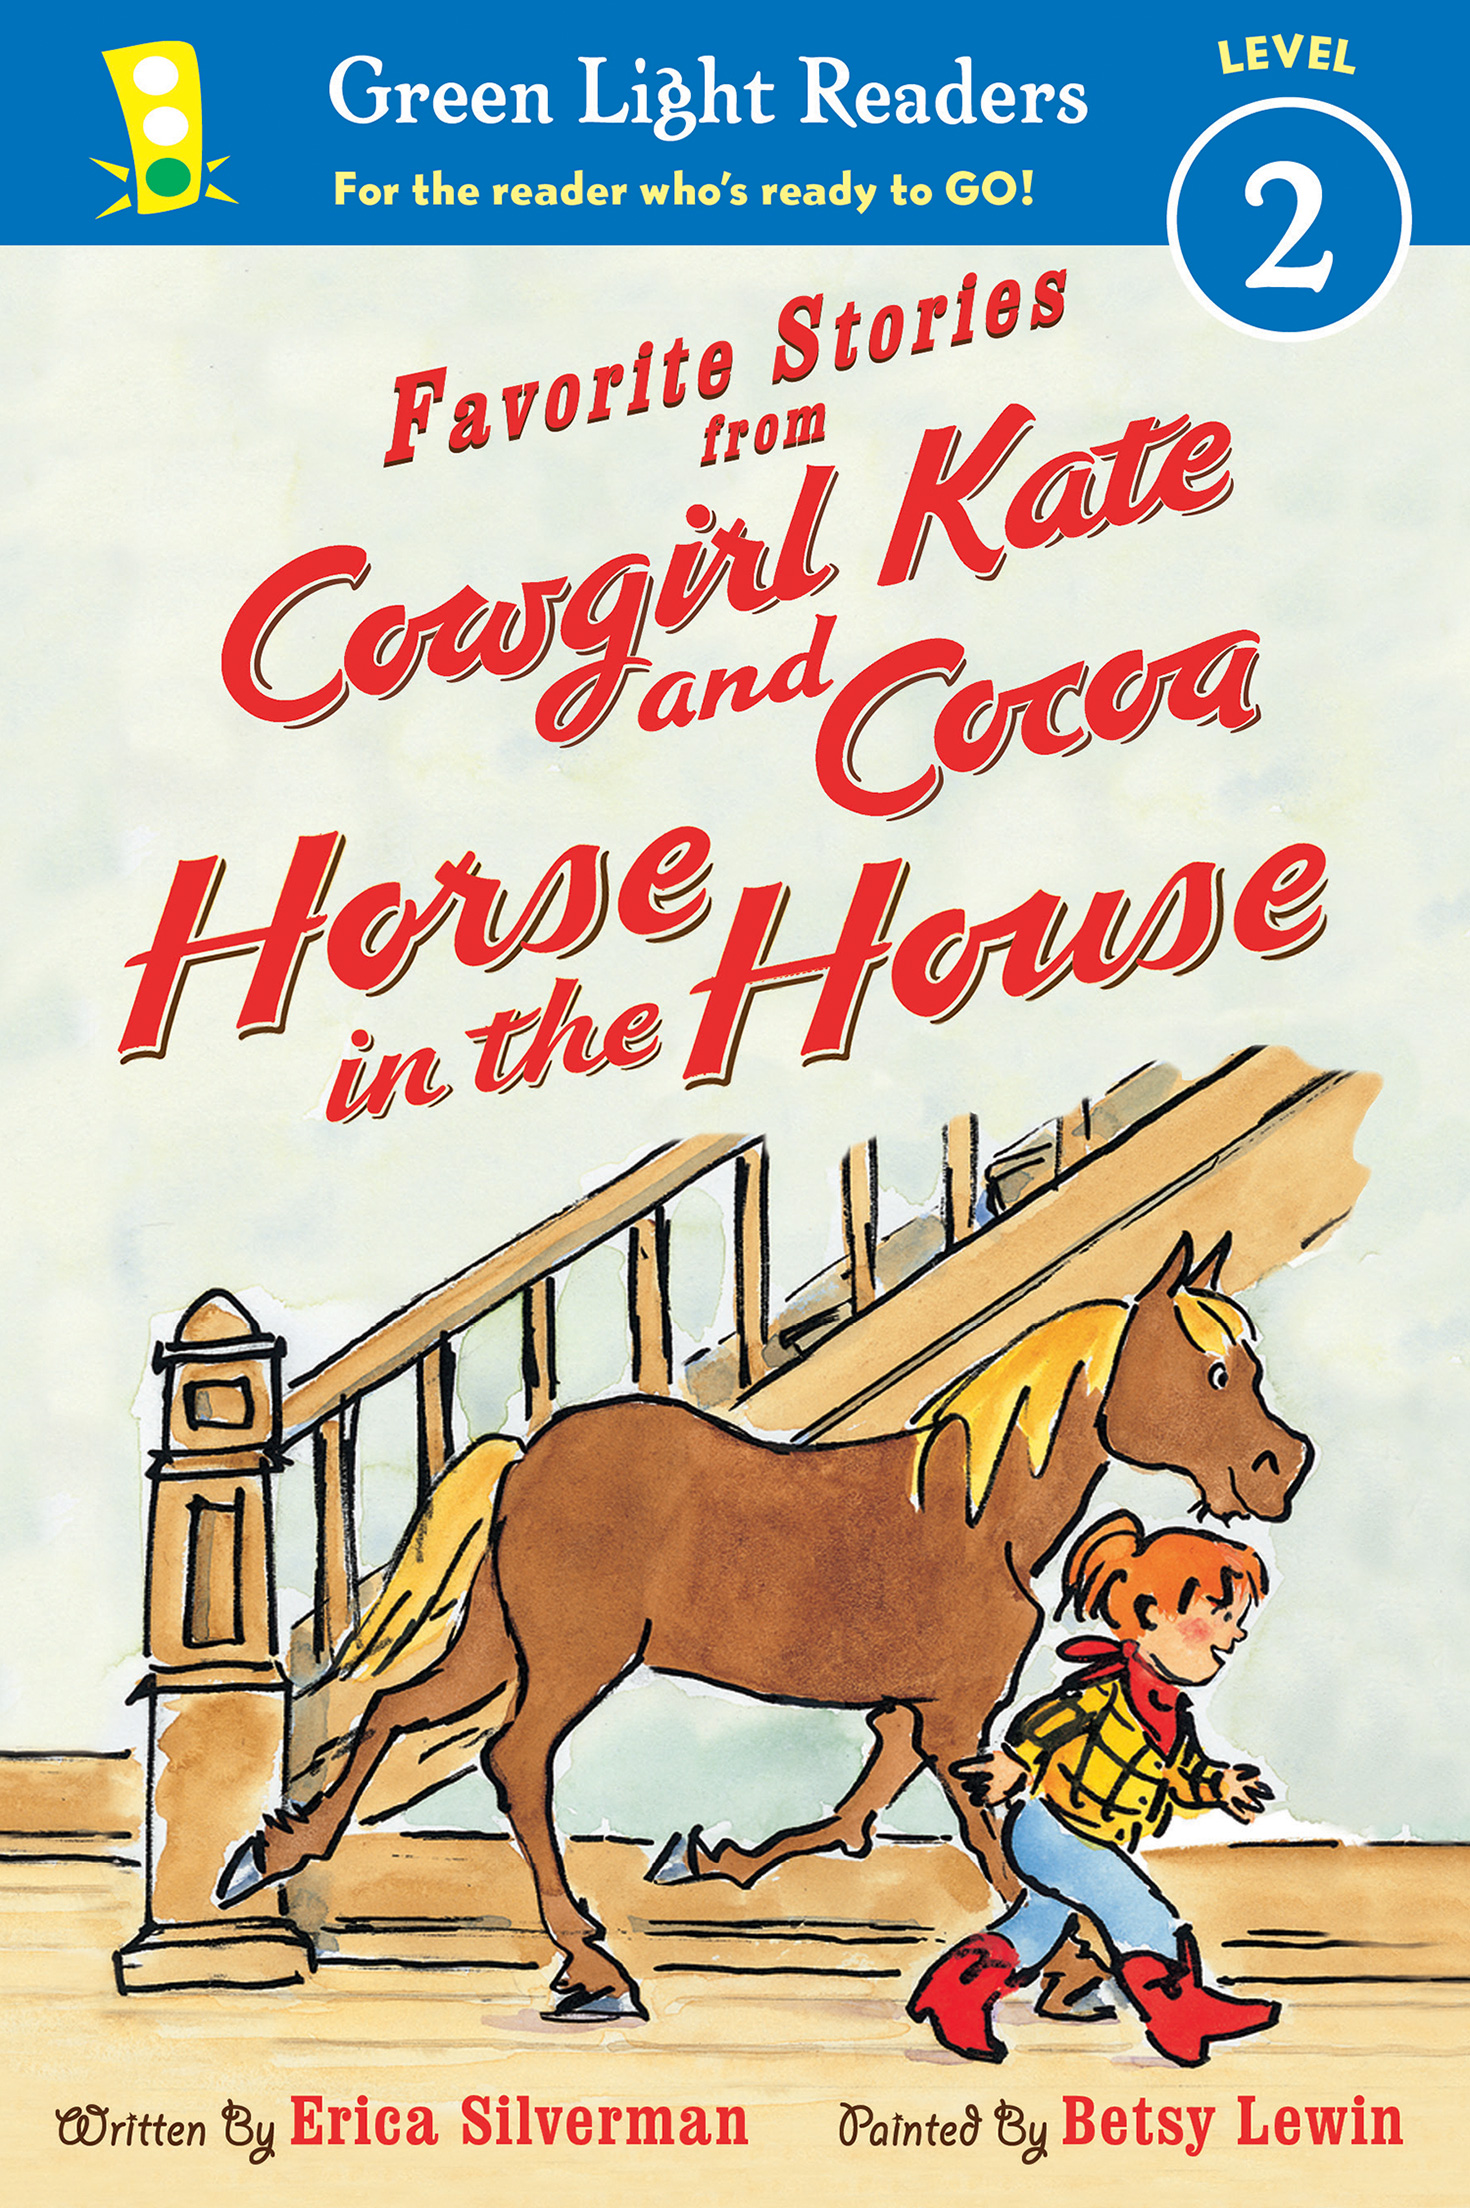 Favorite Stories from Cowgirl Kate and Cocoa: Horse in the House (reader)-9781328900890